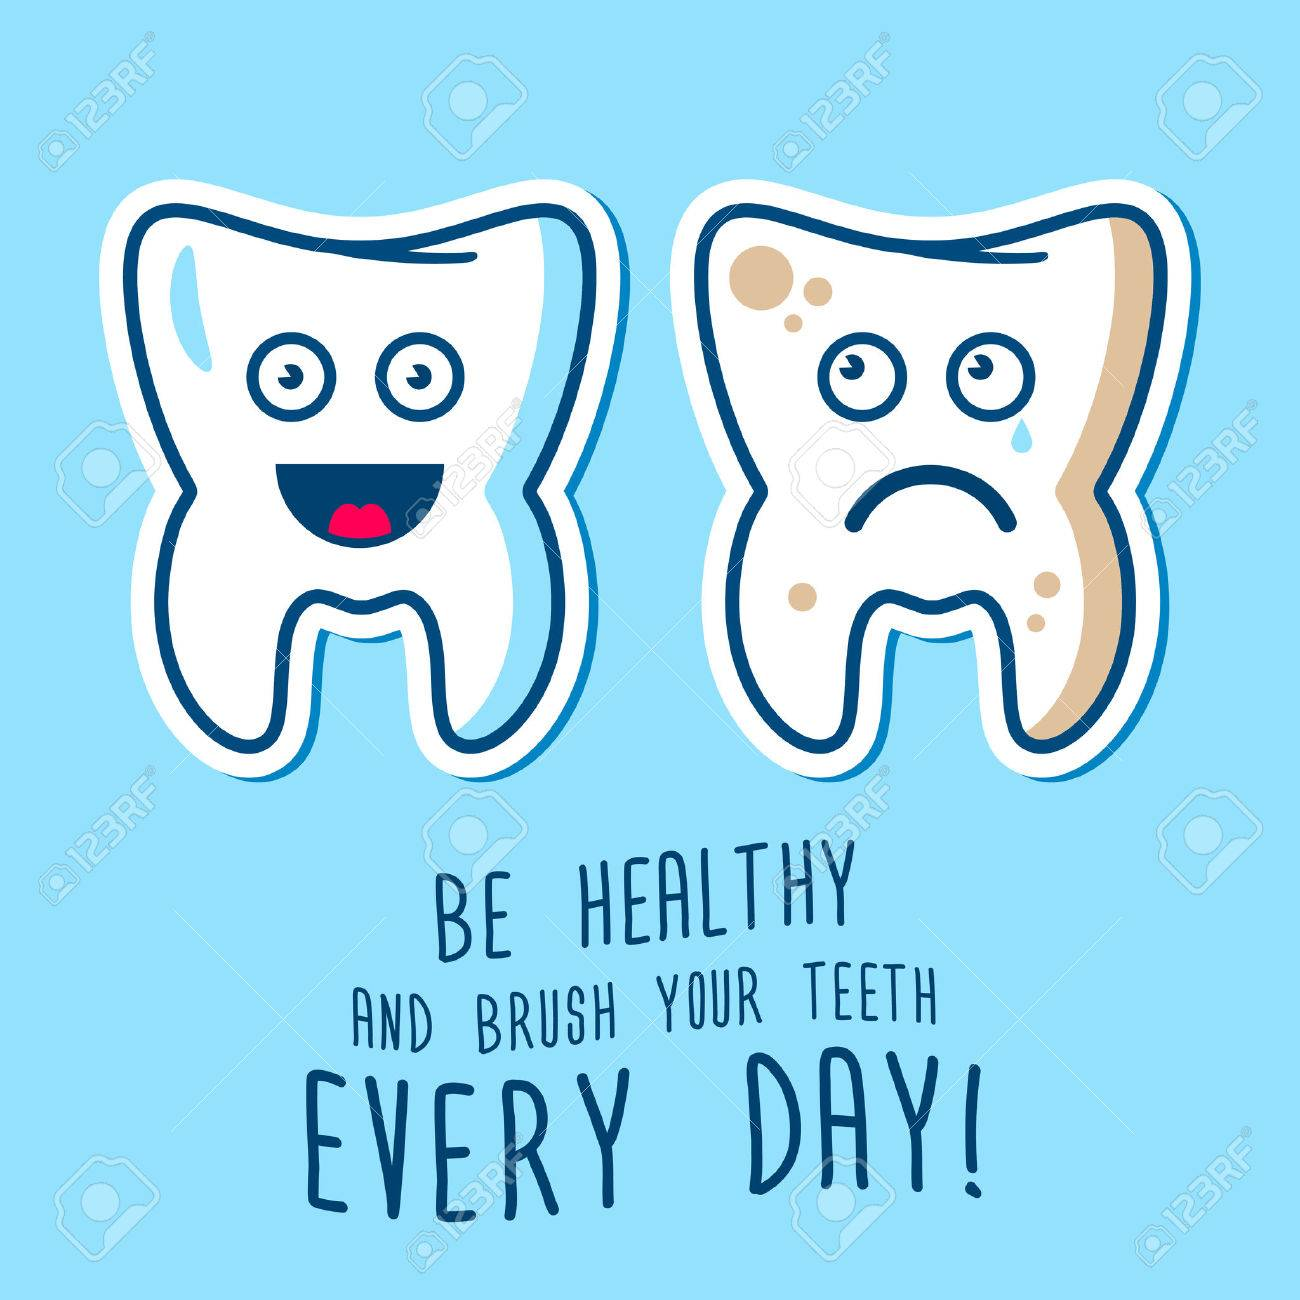 Vector illustration of the dirty ill and jpy healthy teeth, blue and red toothbrashes on a sky background. Fully editable illustration. Perfect for children illustrations, medcine care, images etc. - 40949603